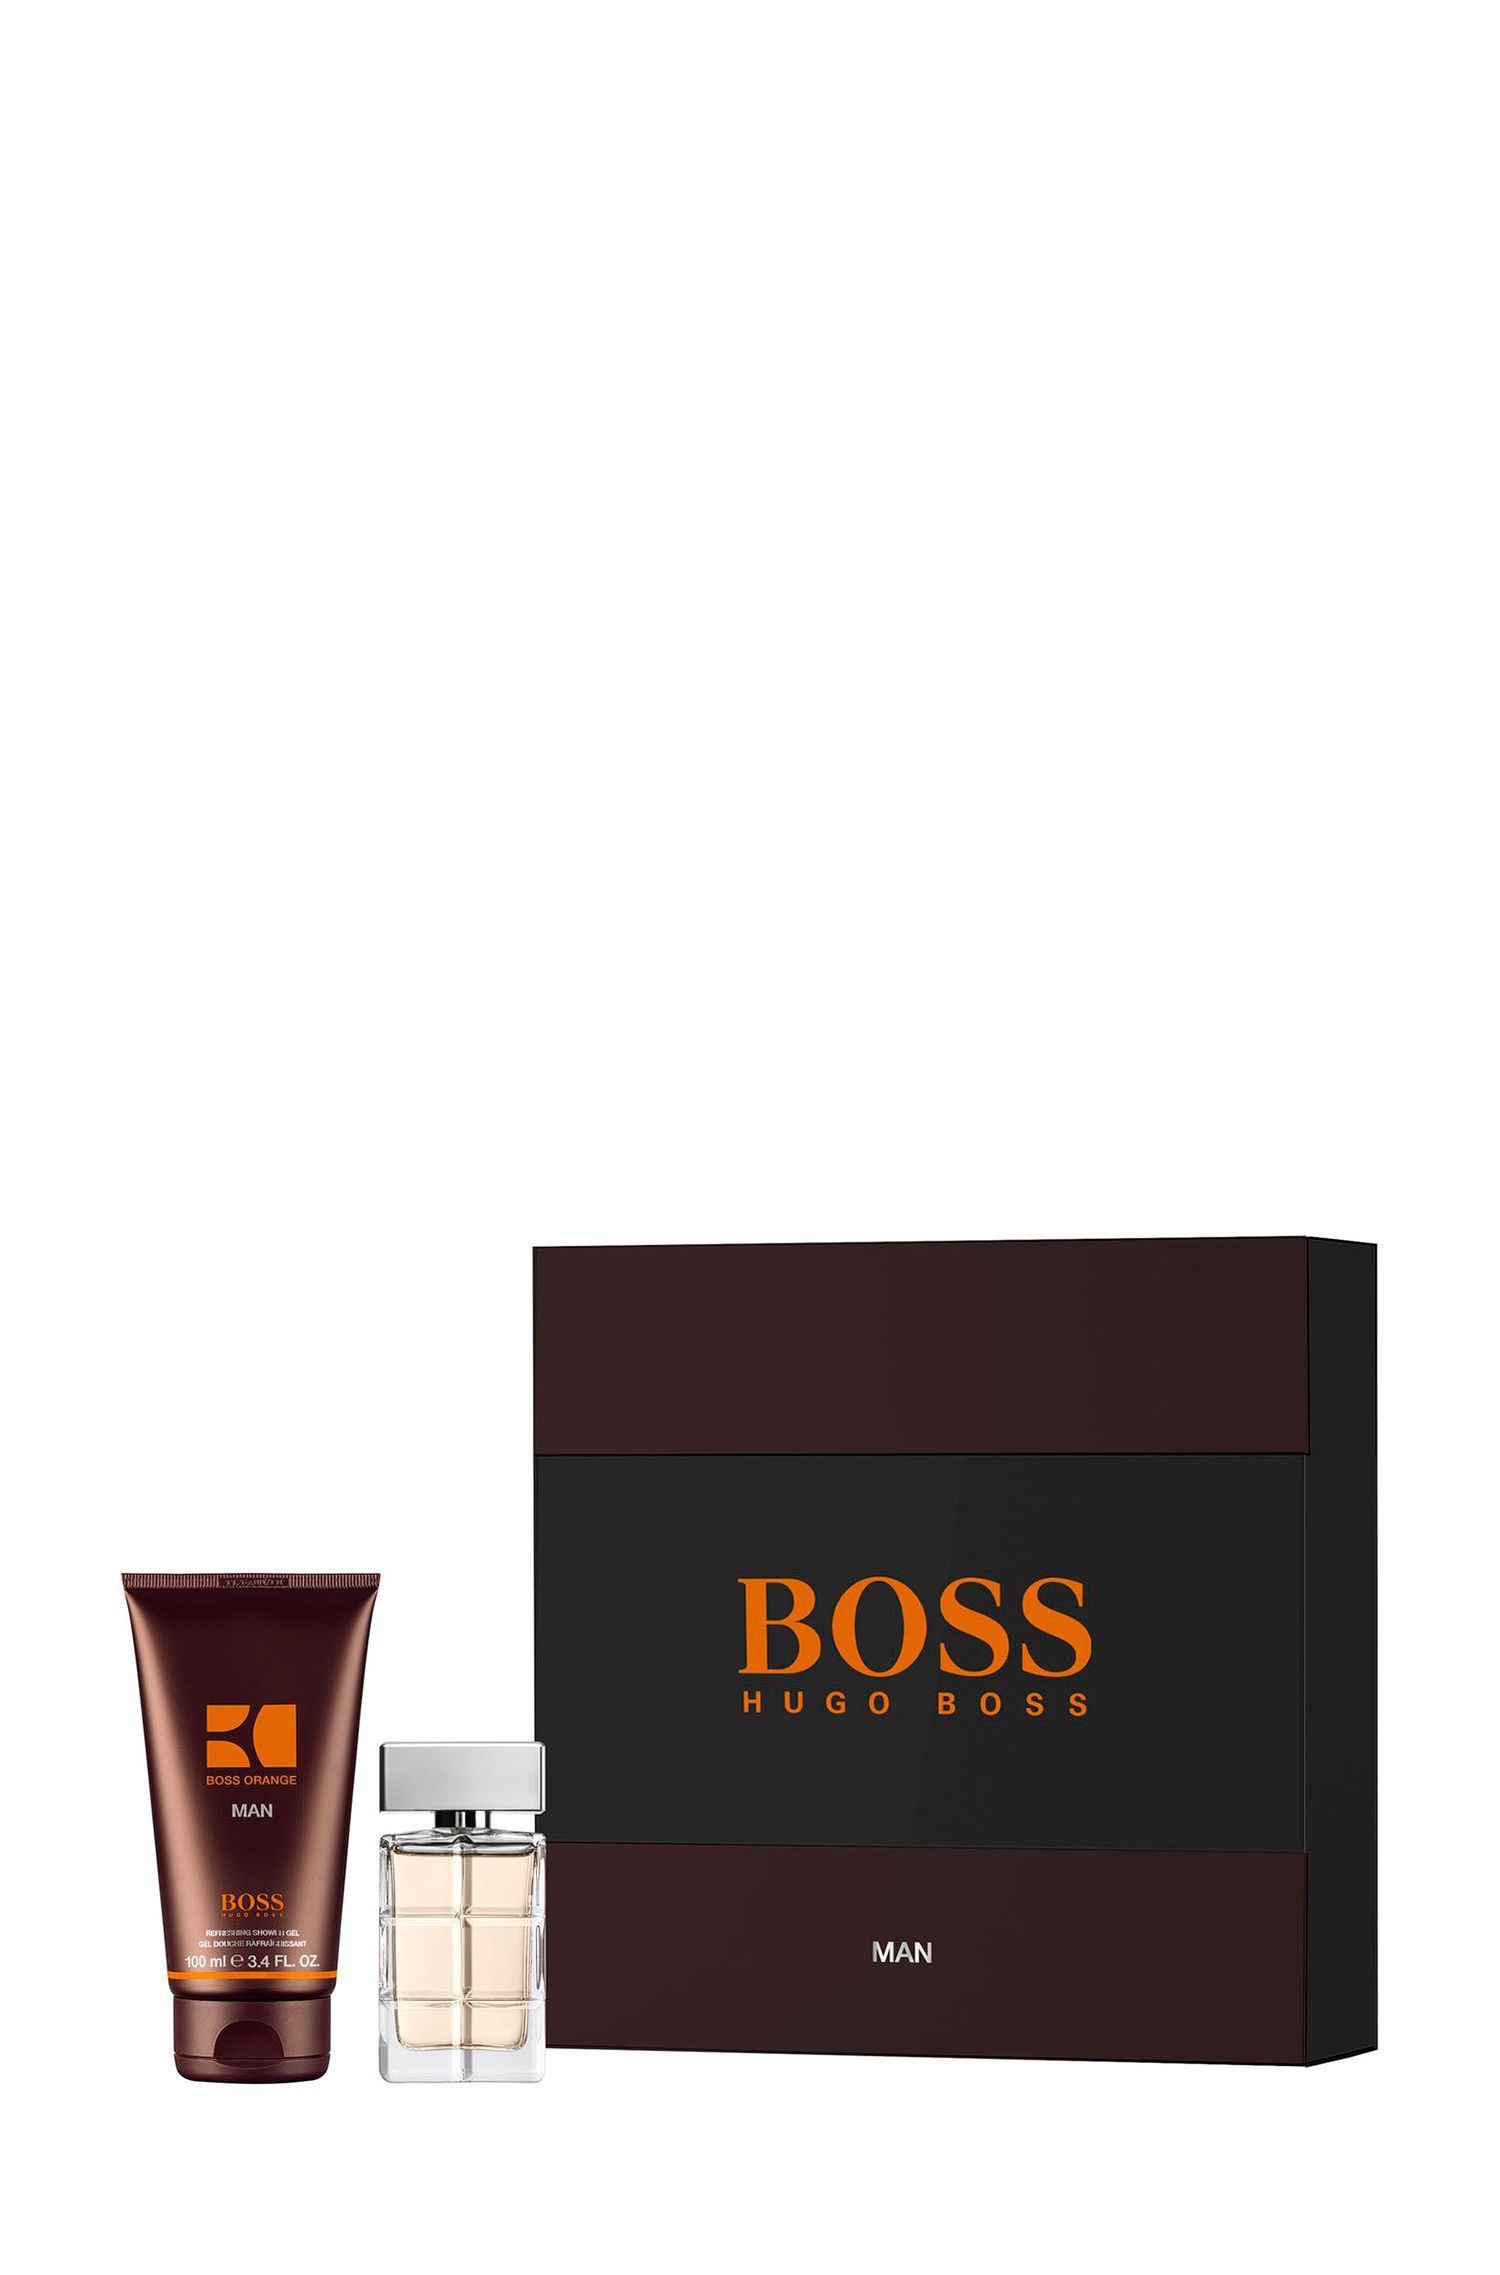 Duft BOSS Orange Man im Geschenk-Set